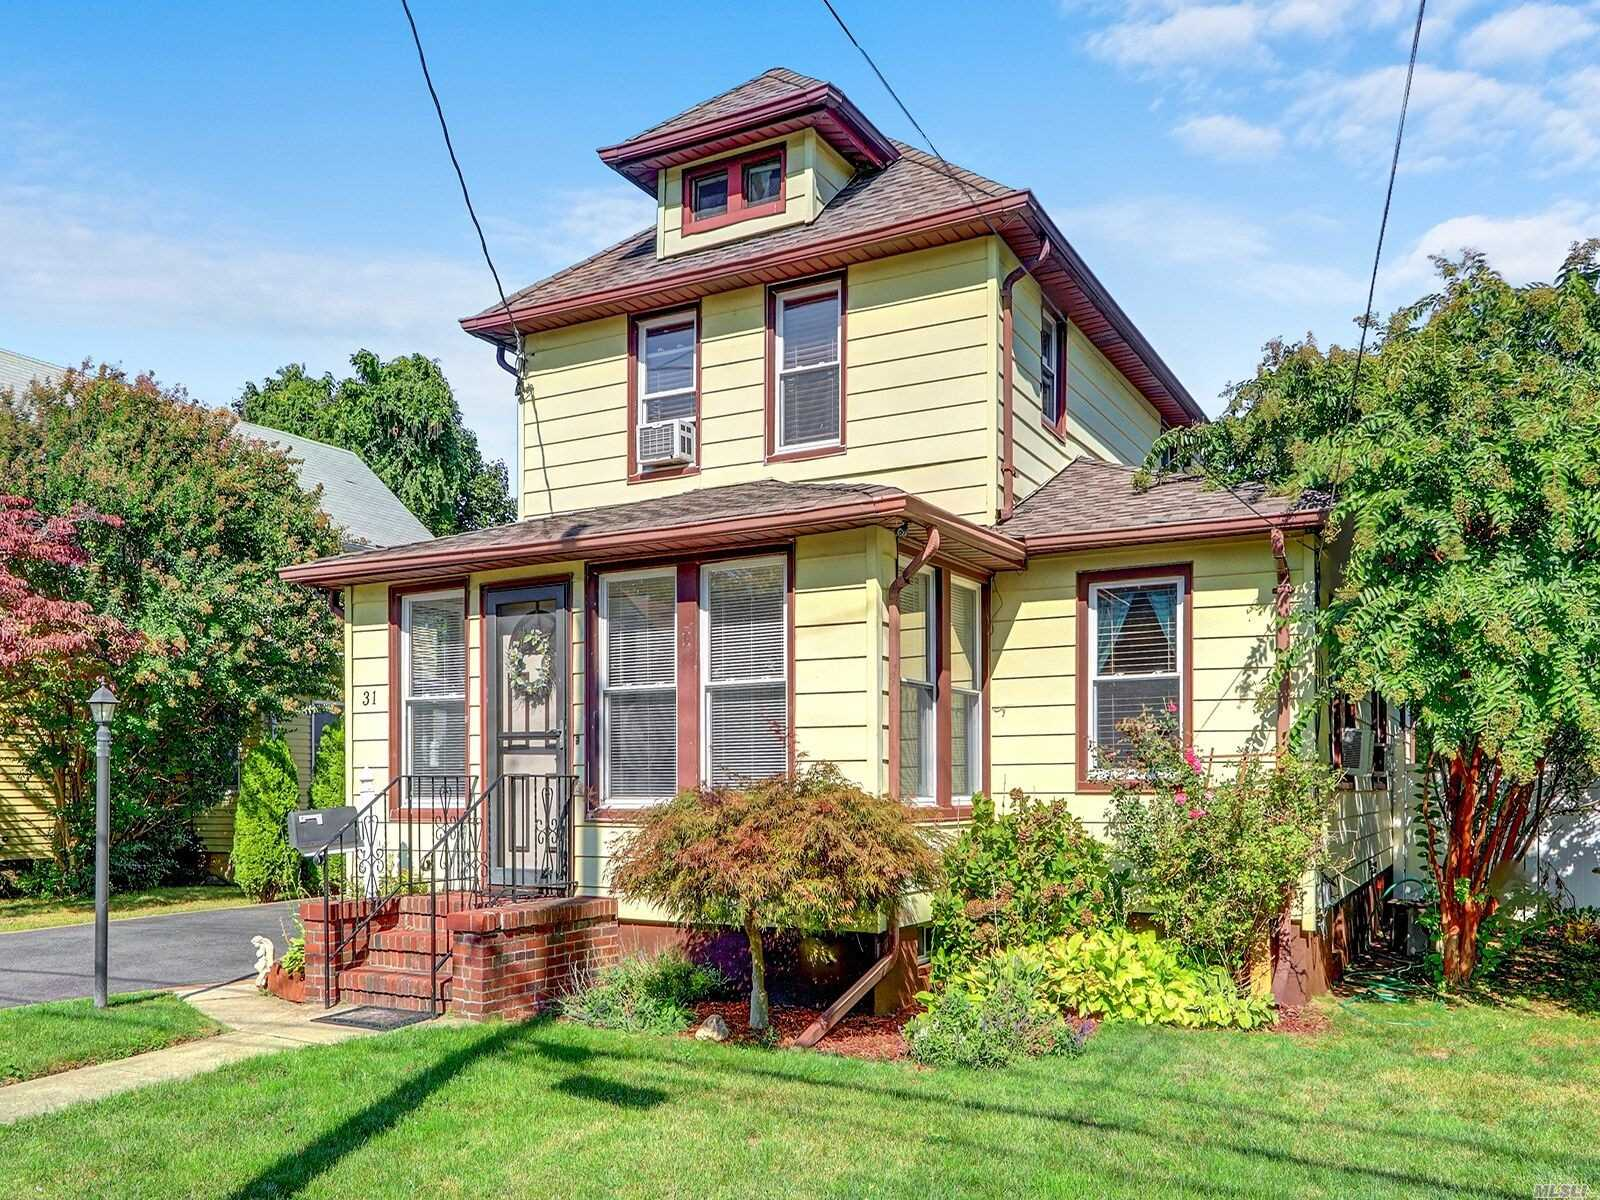 31 Mckinley Ave 11801 - One of Hicksville Homes for Sale